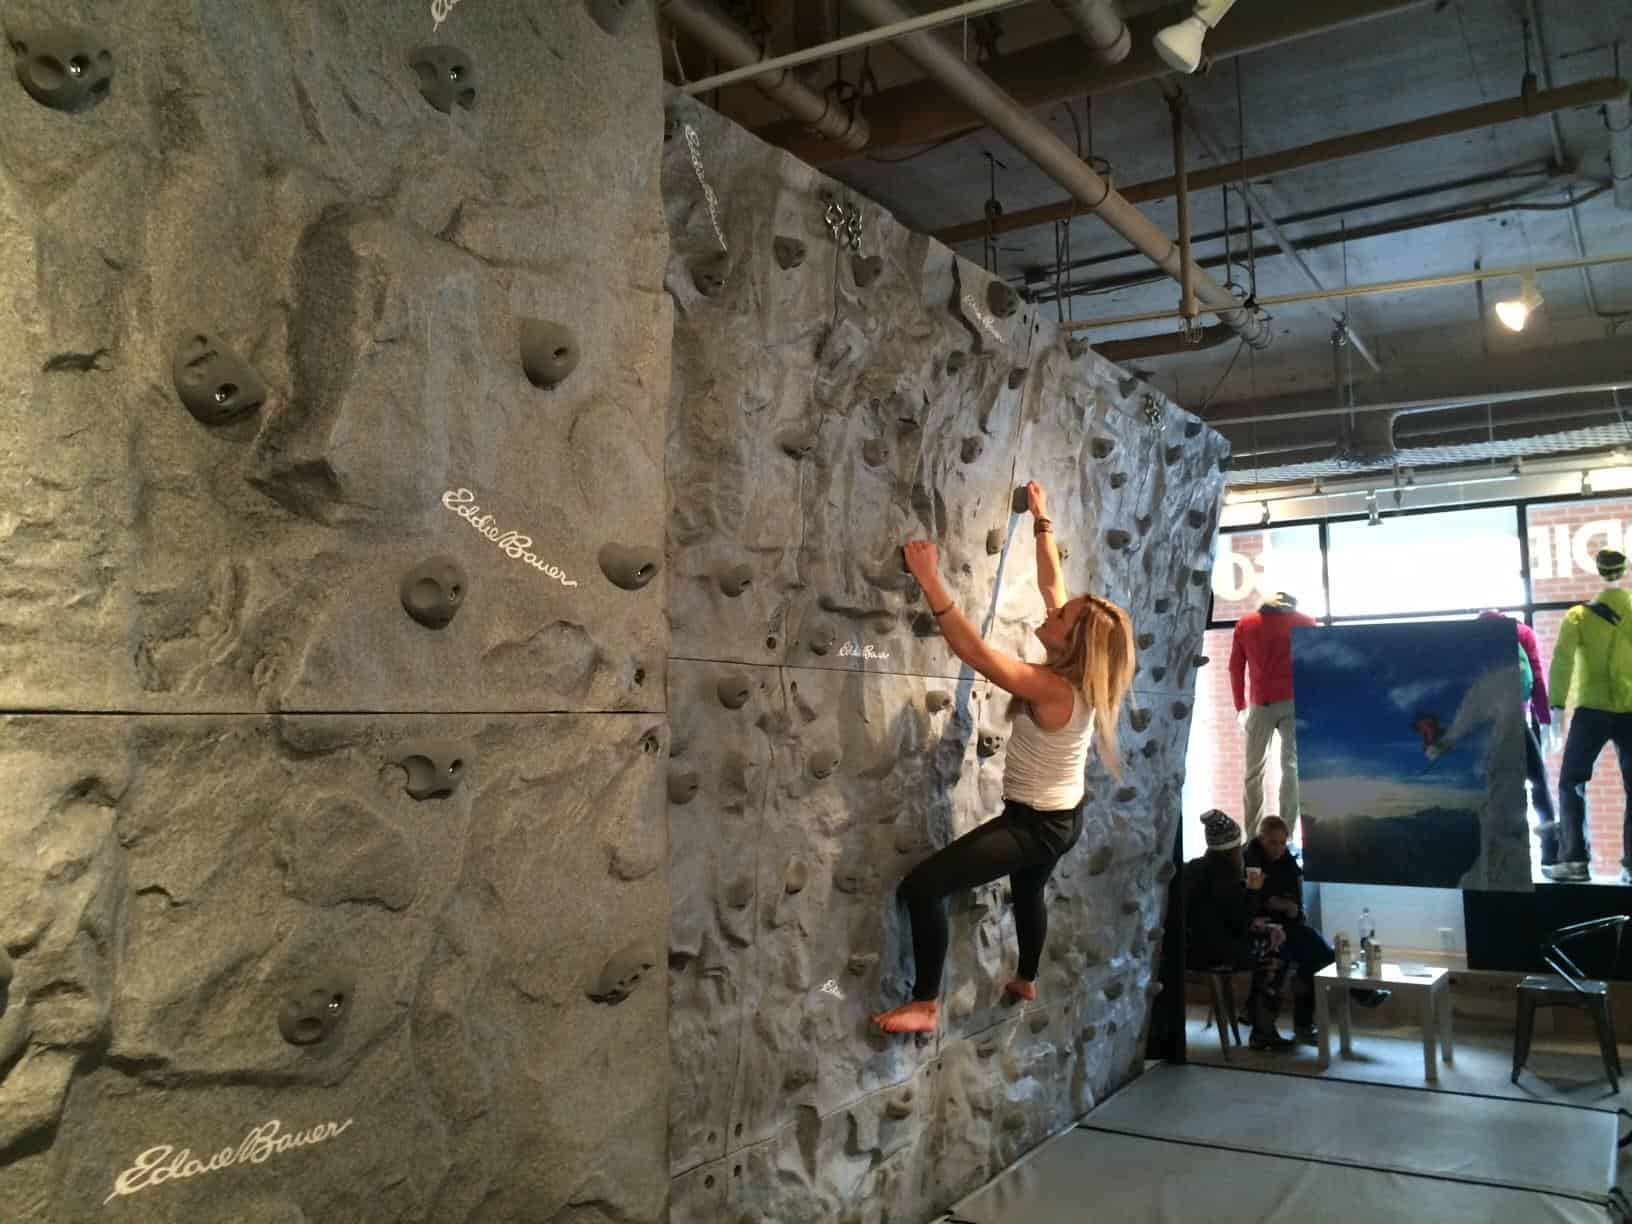 Traversing Wall Climbing Attractions Innovative Leisure